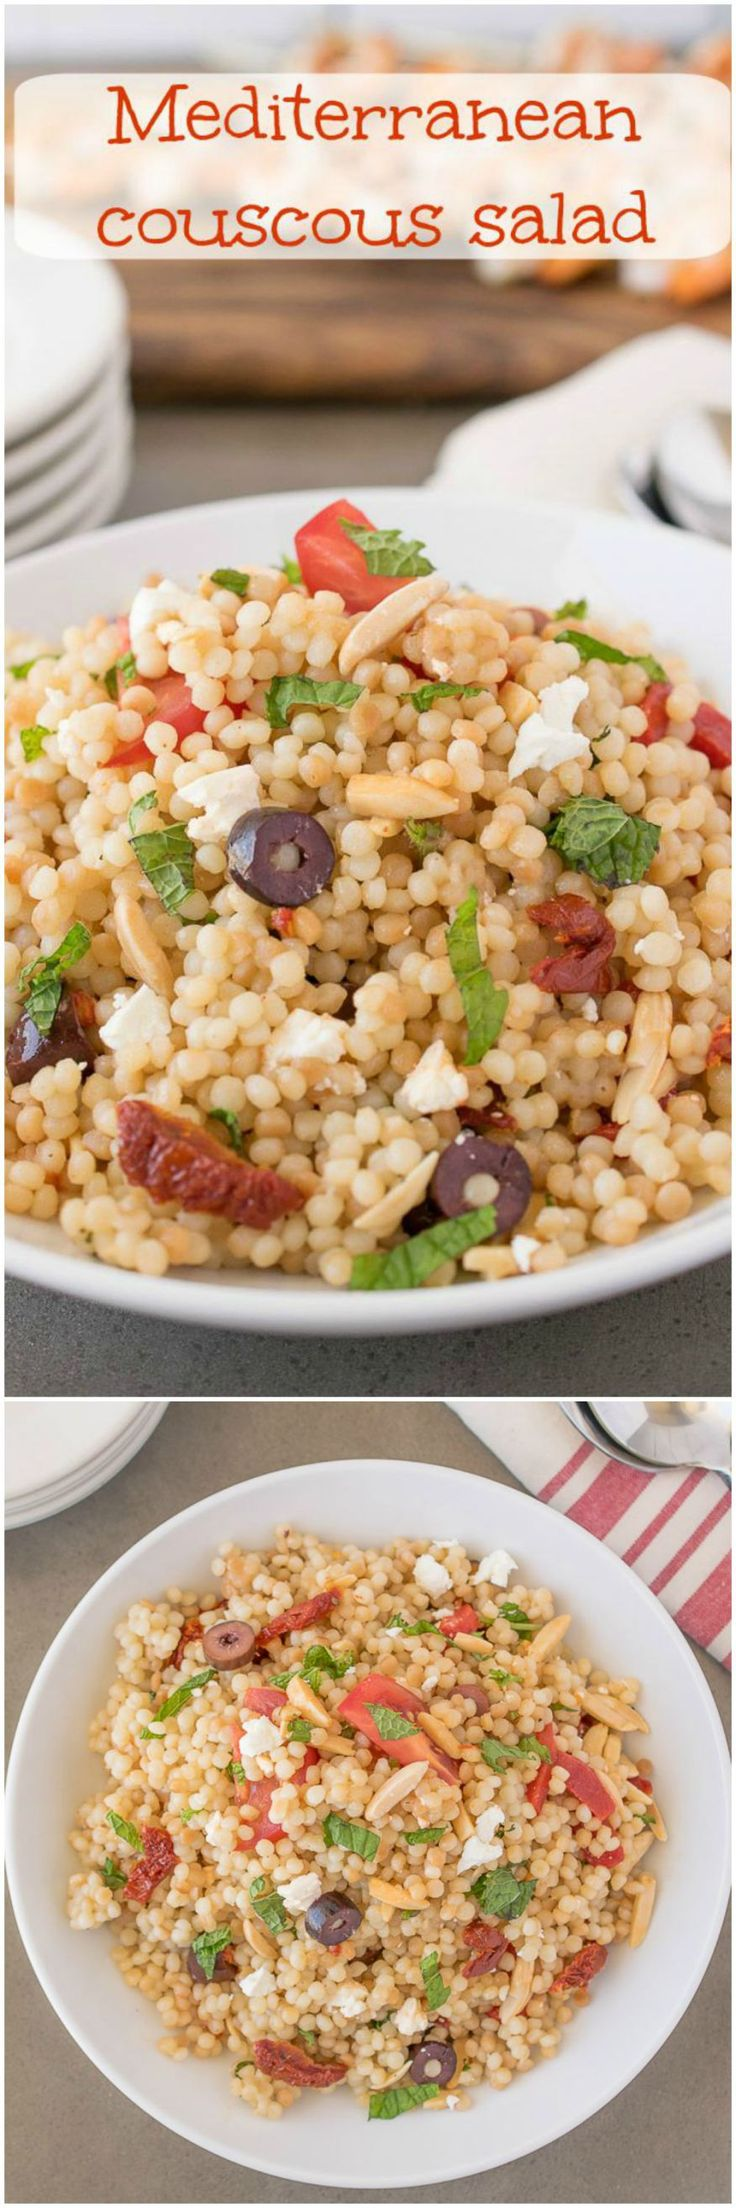 ... | Mediterranean Couscous Salad, Couscous and Couscous Salad Recipes